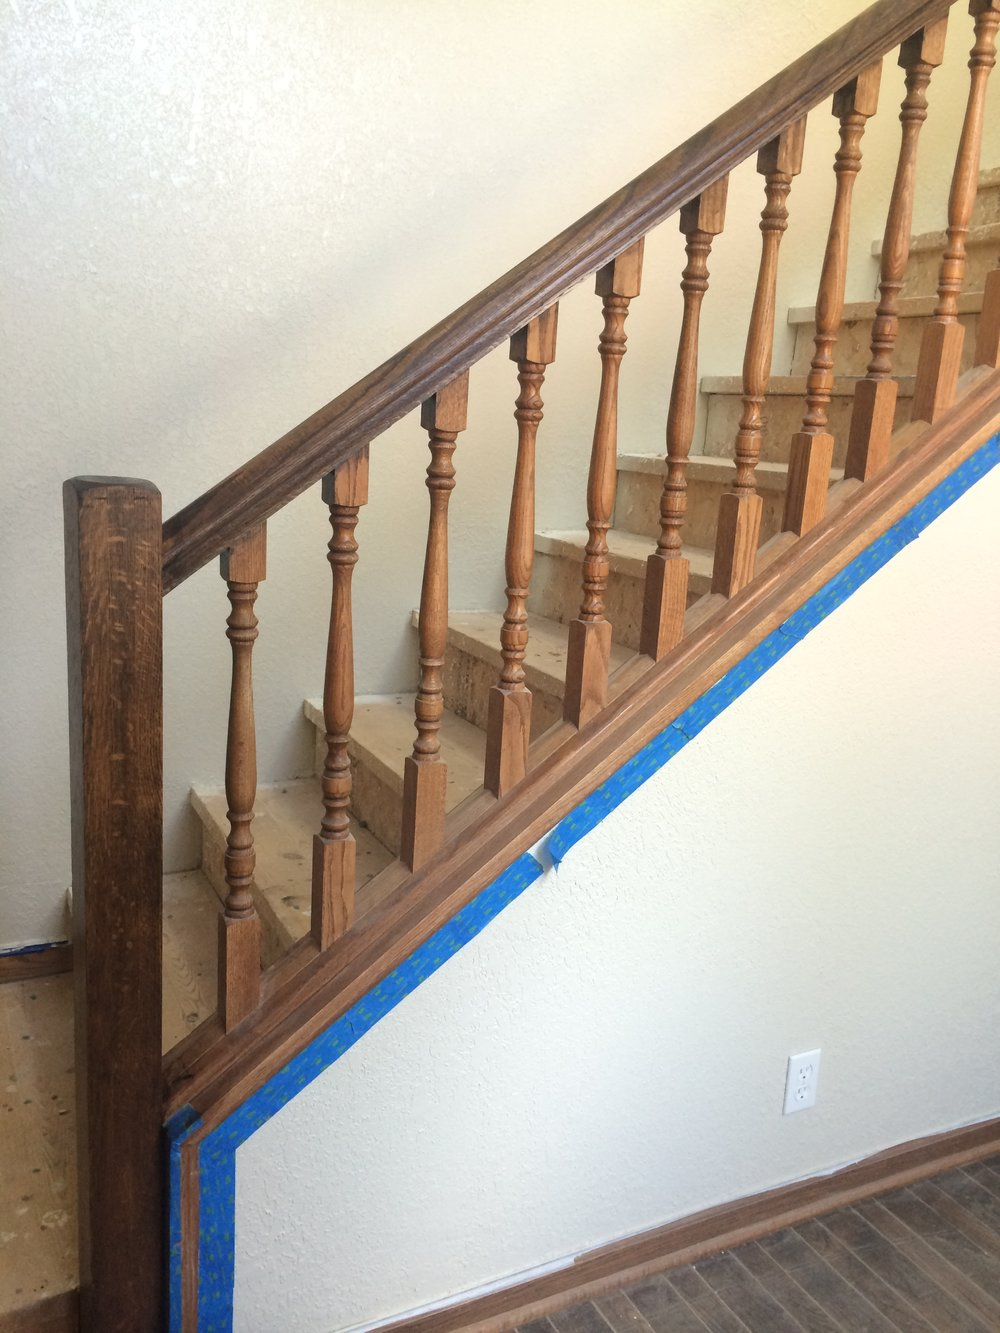 my attempt at staining the staircase...